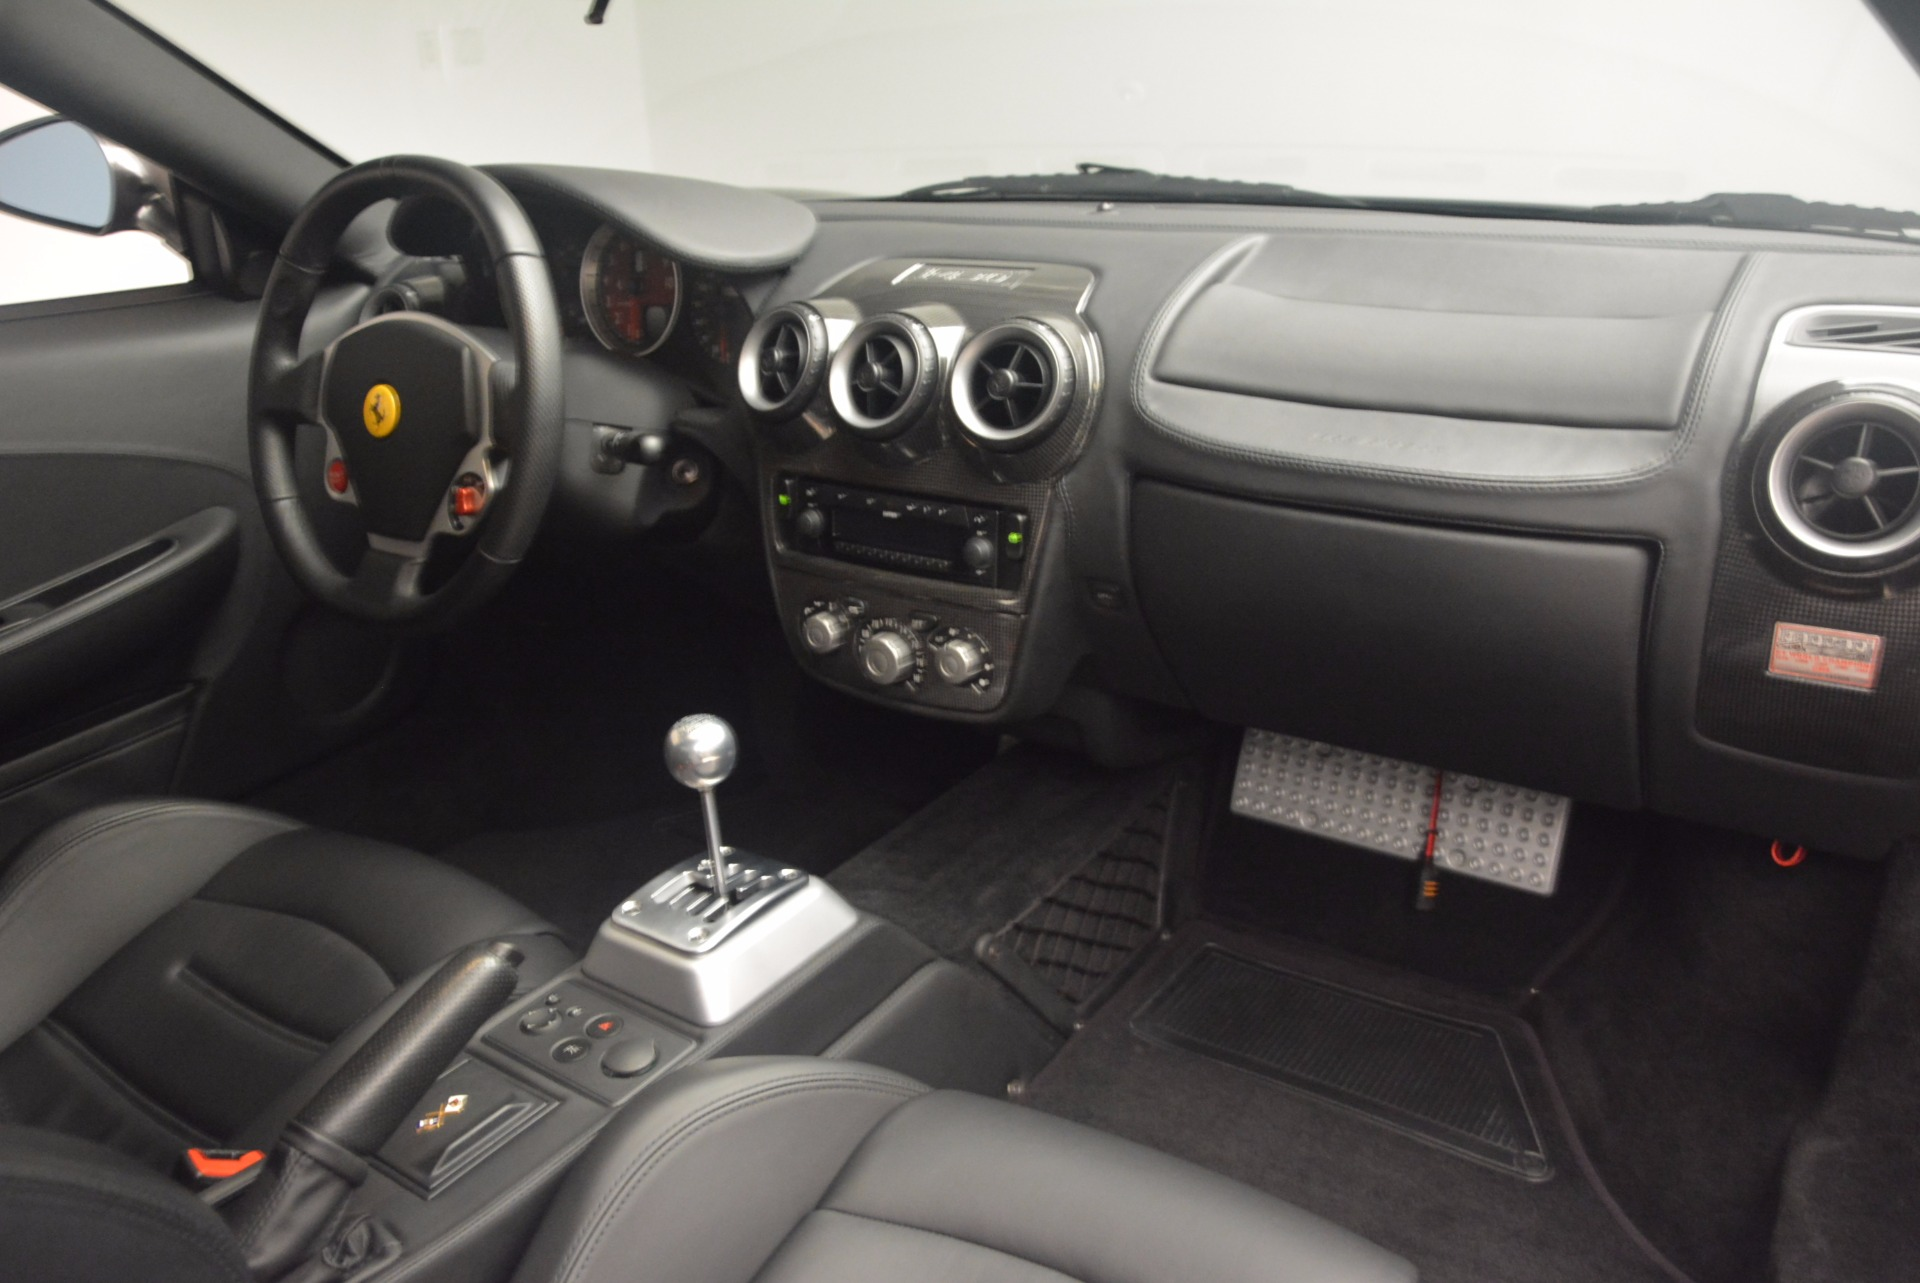 Used 2005 Ferrari F430 6-Speed Manual For Sale In Westport, CT 1286_p17